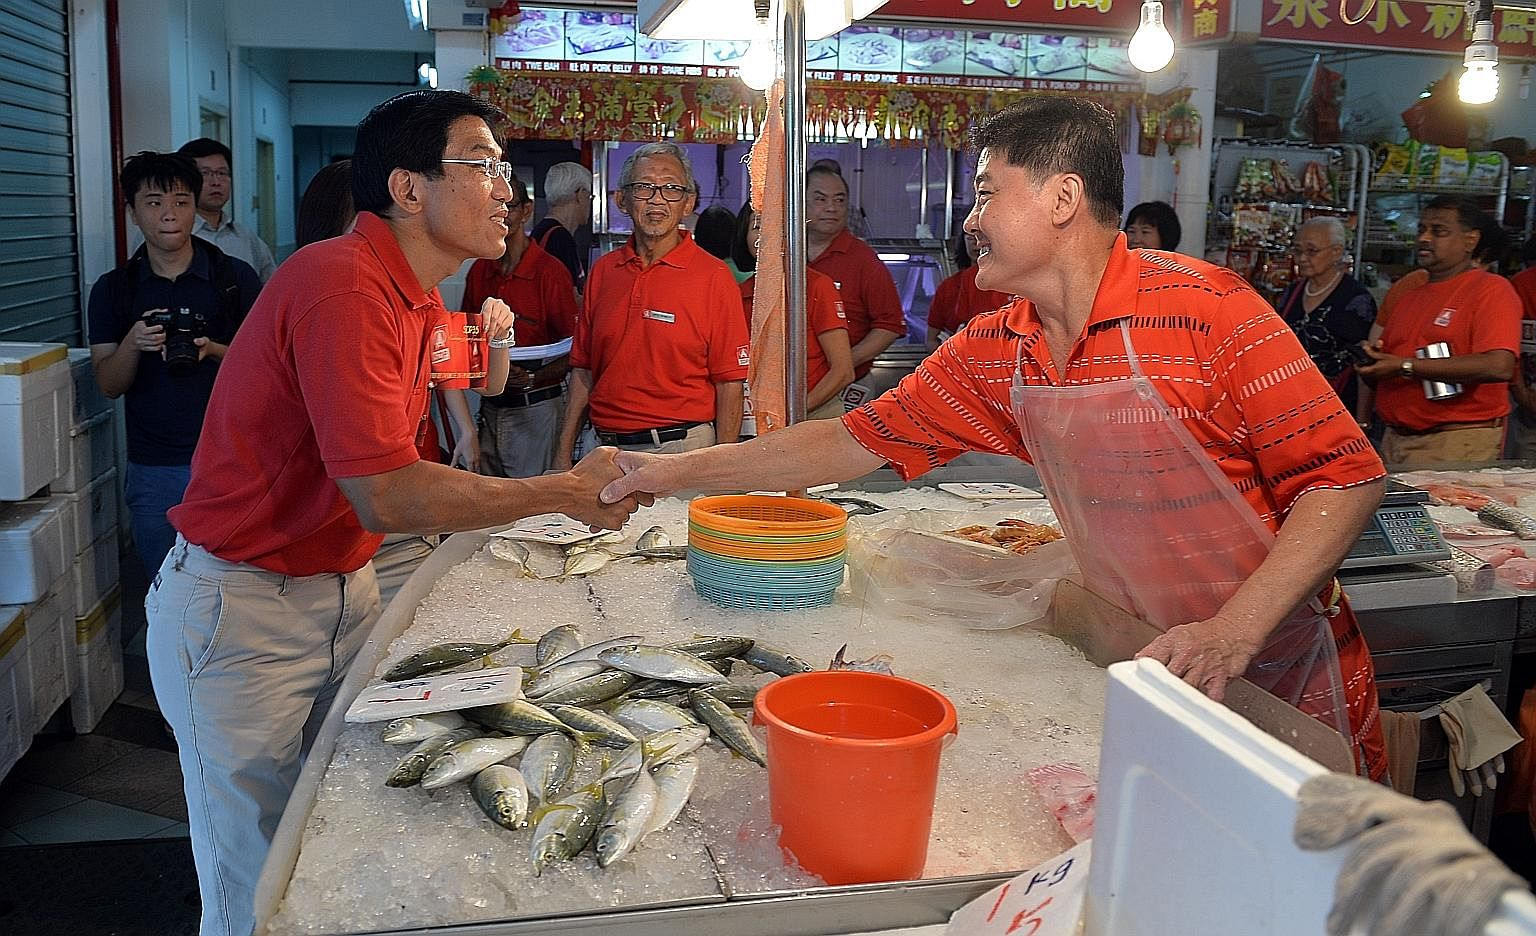 Dr Chee making his rounds in Bukit Batok on Sunday. The SDP leader is contesting in the by-election in the constituency.